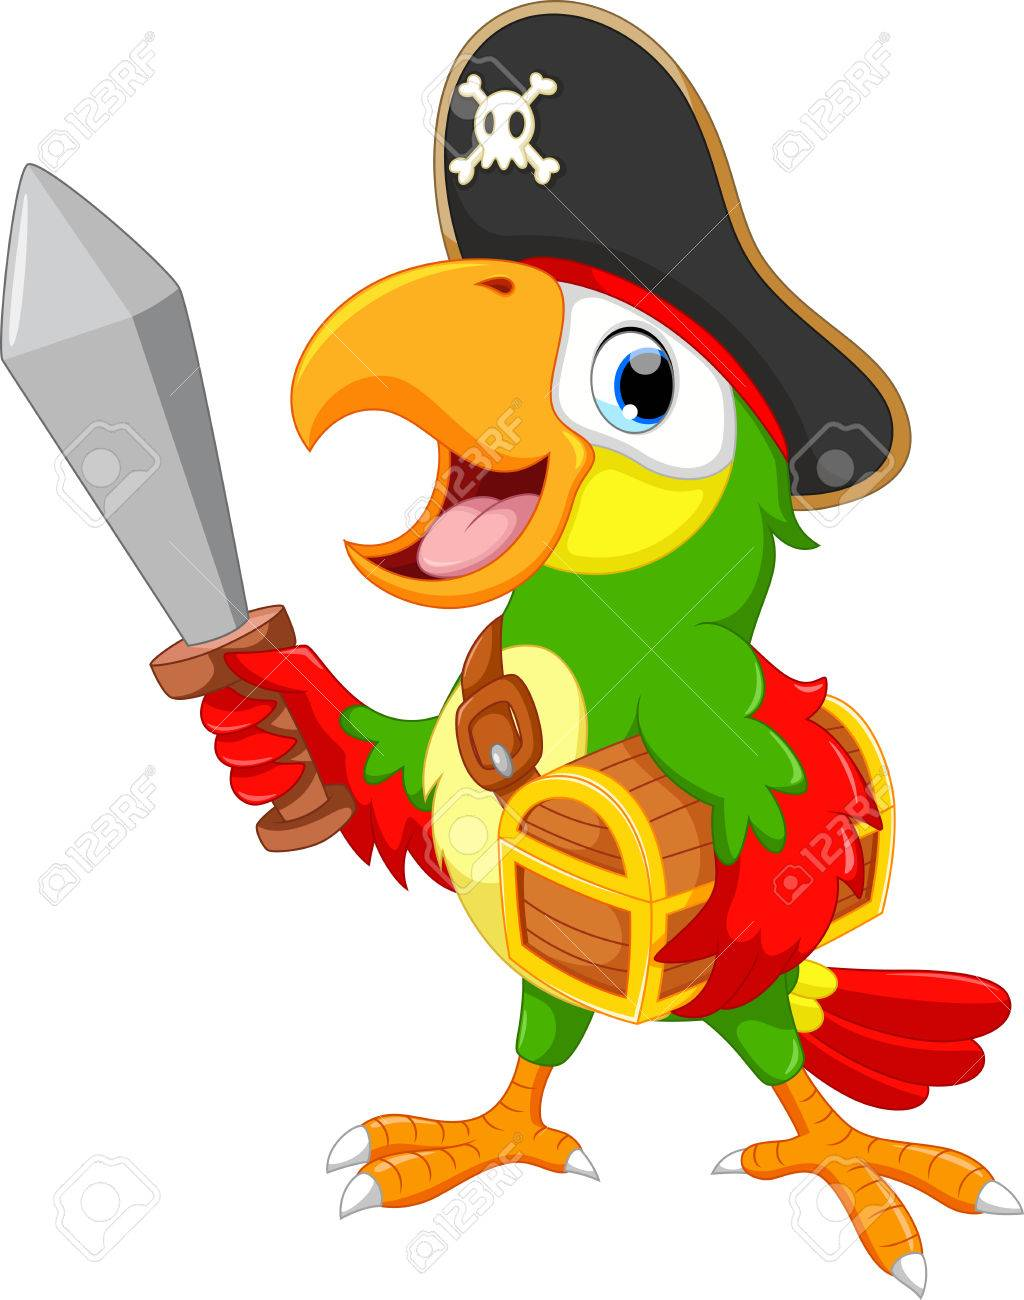 Pirate parrot clipart 4 » Clipart Station.